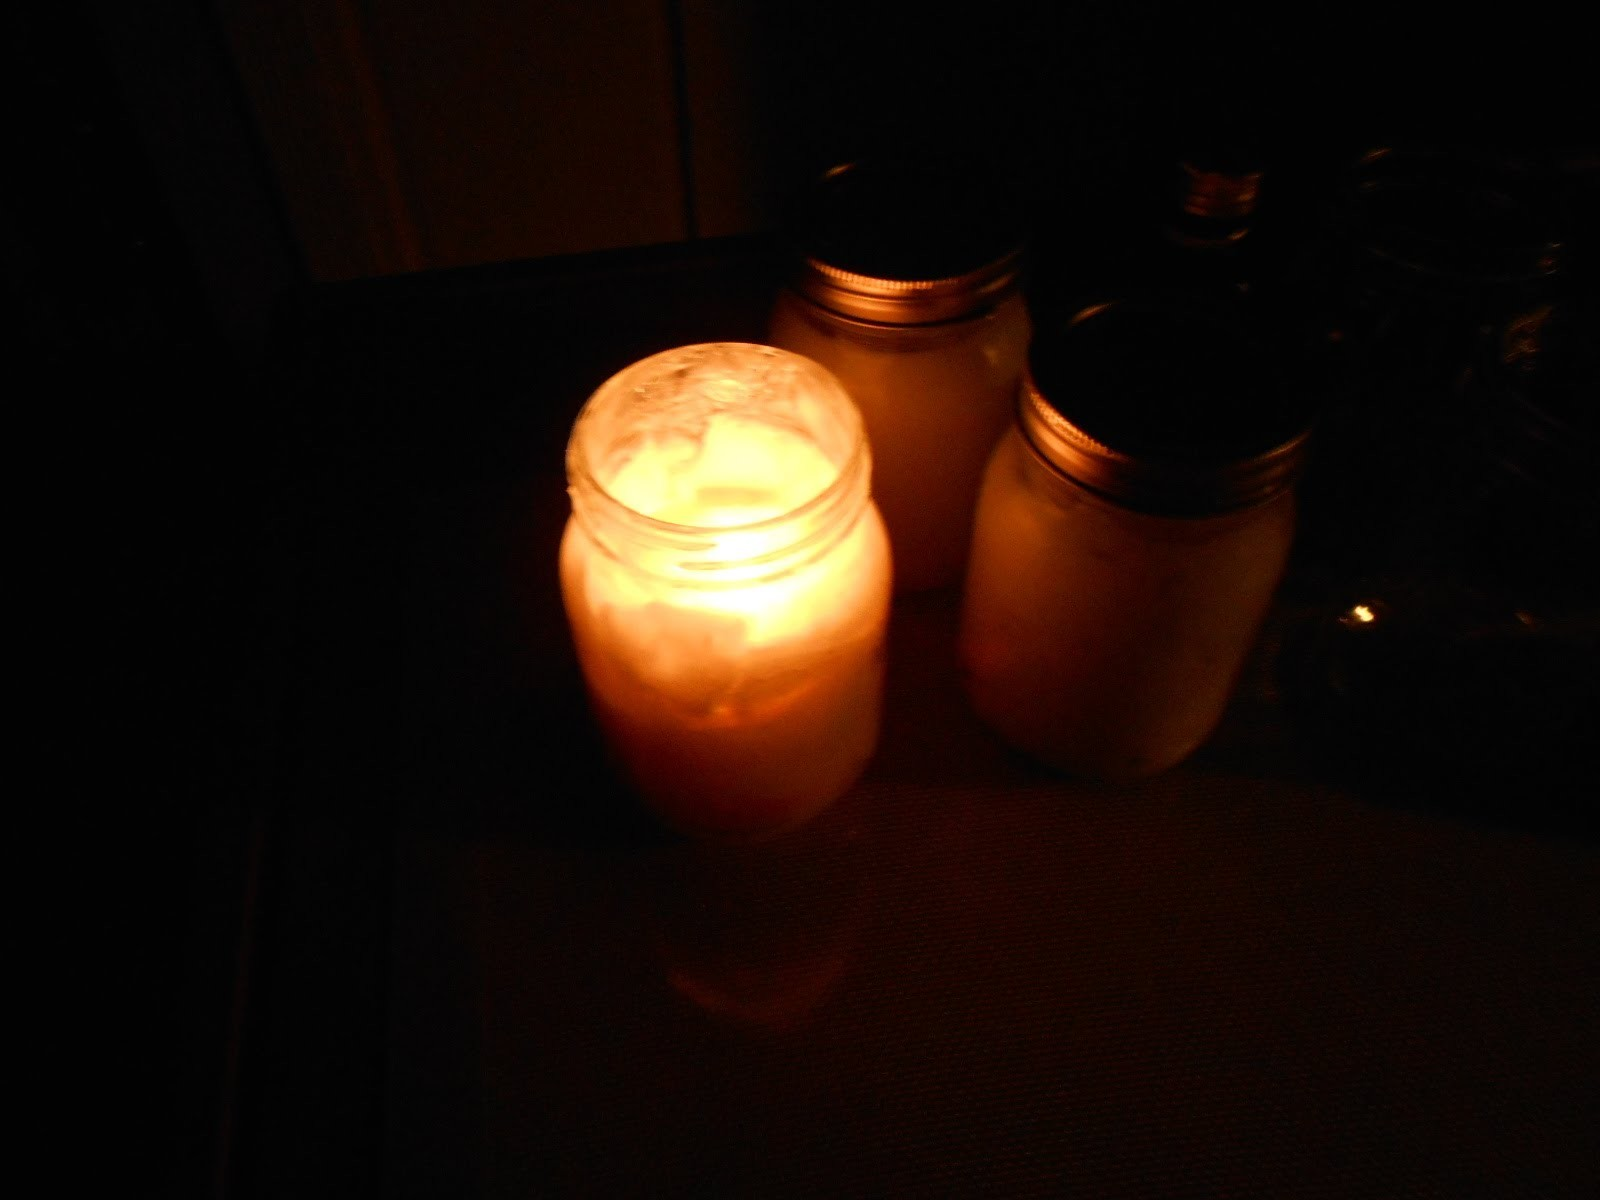 How To Make Cheap 100 Hour Emergency Candles